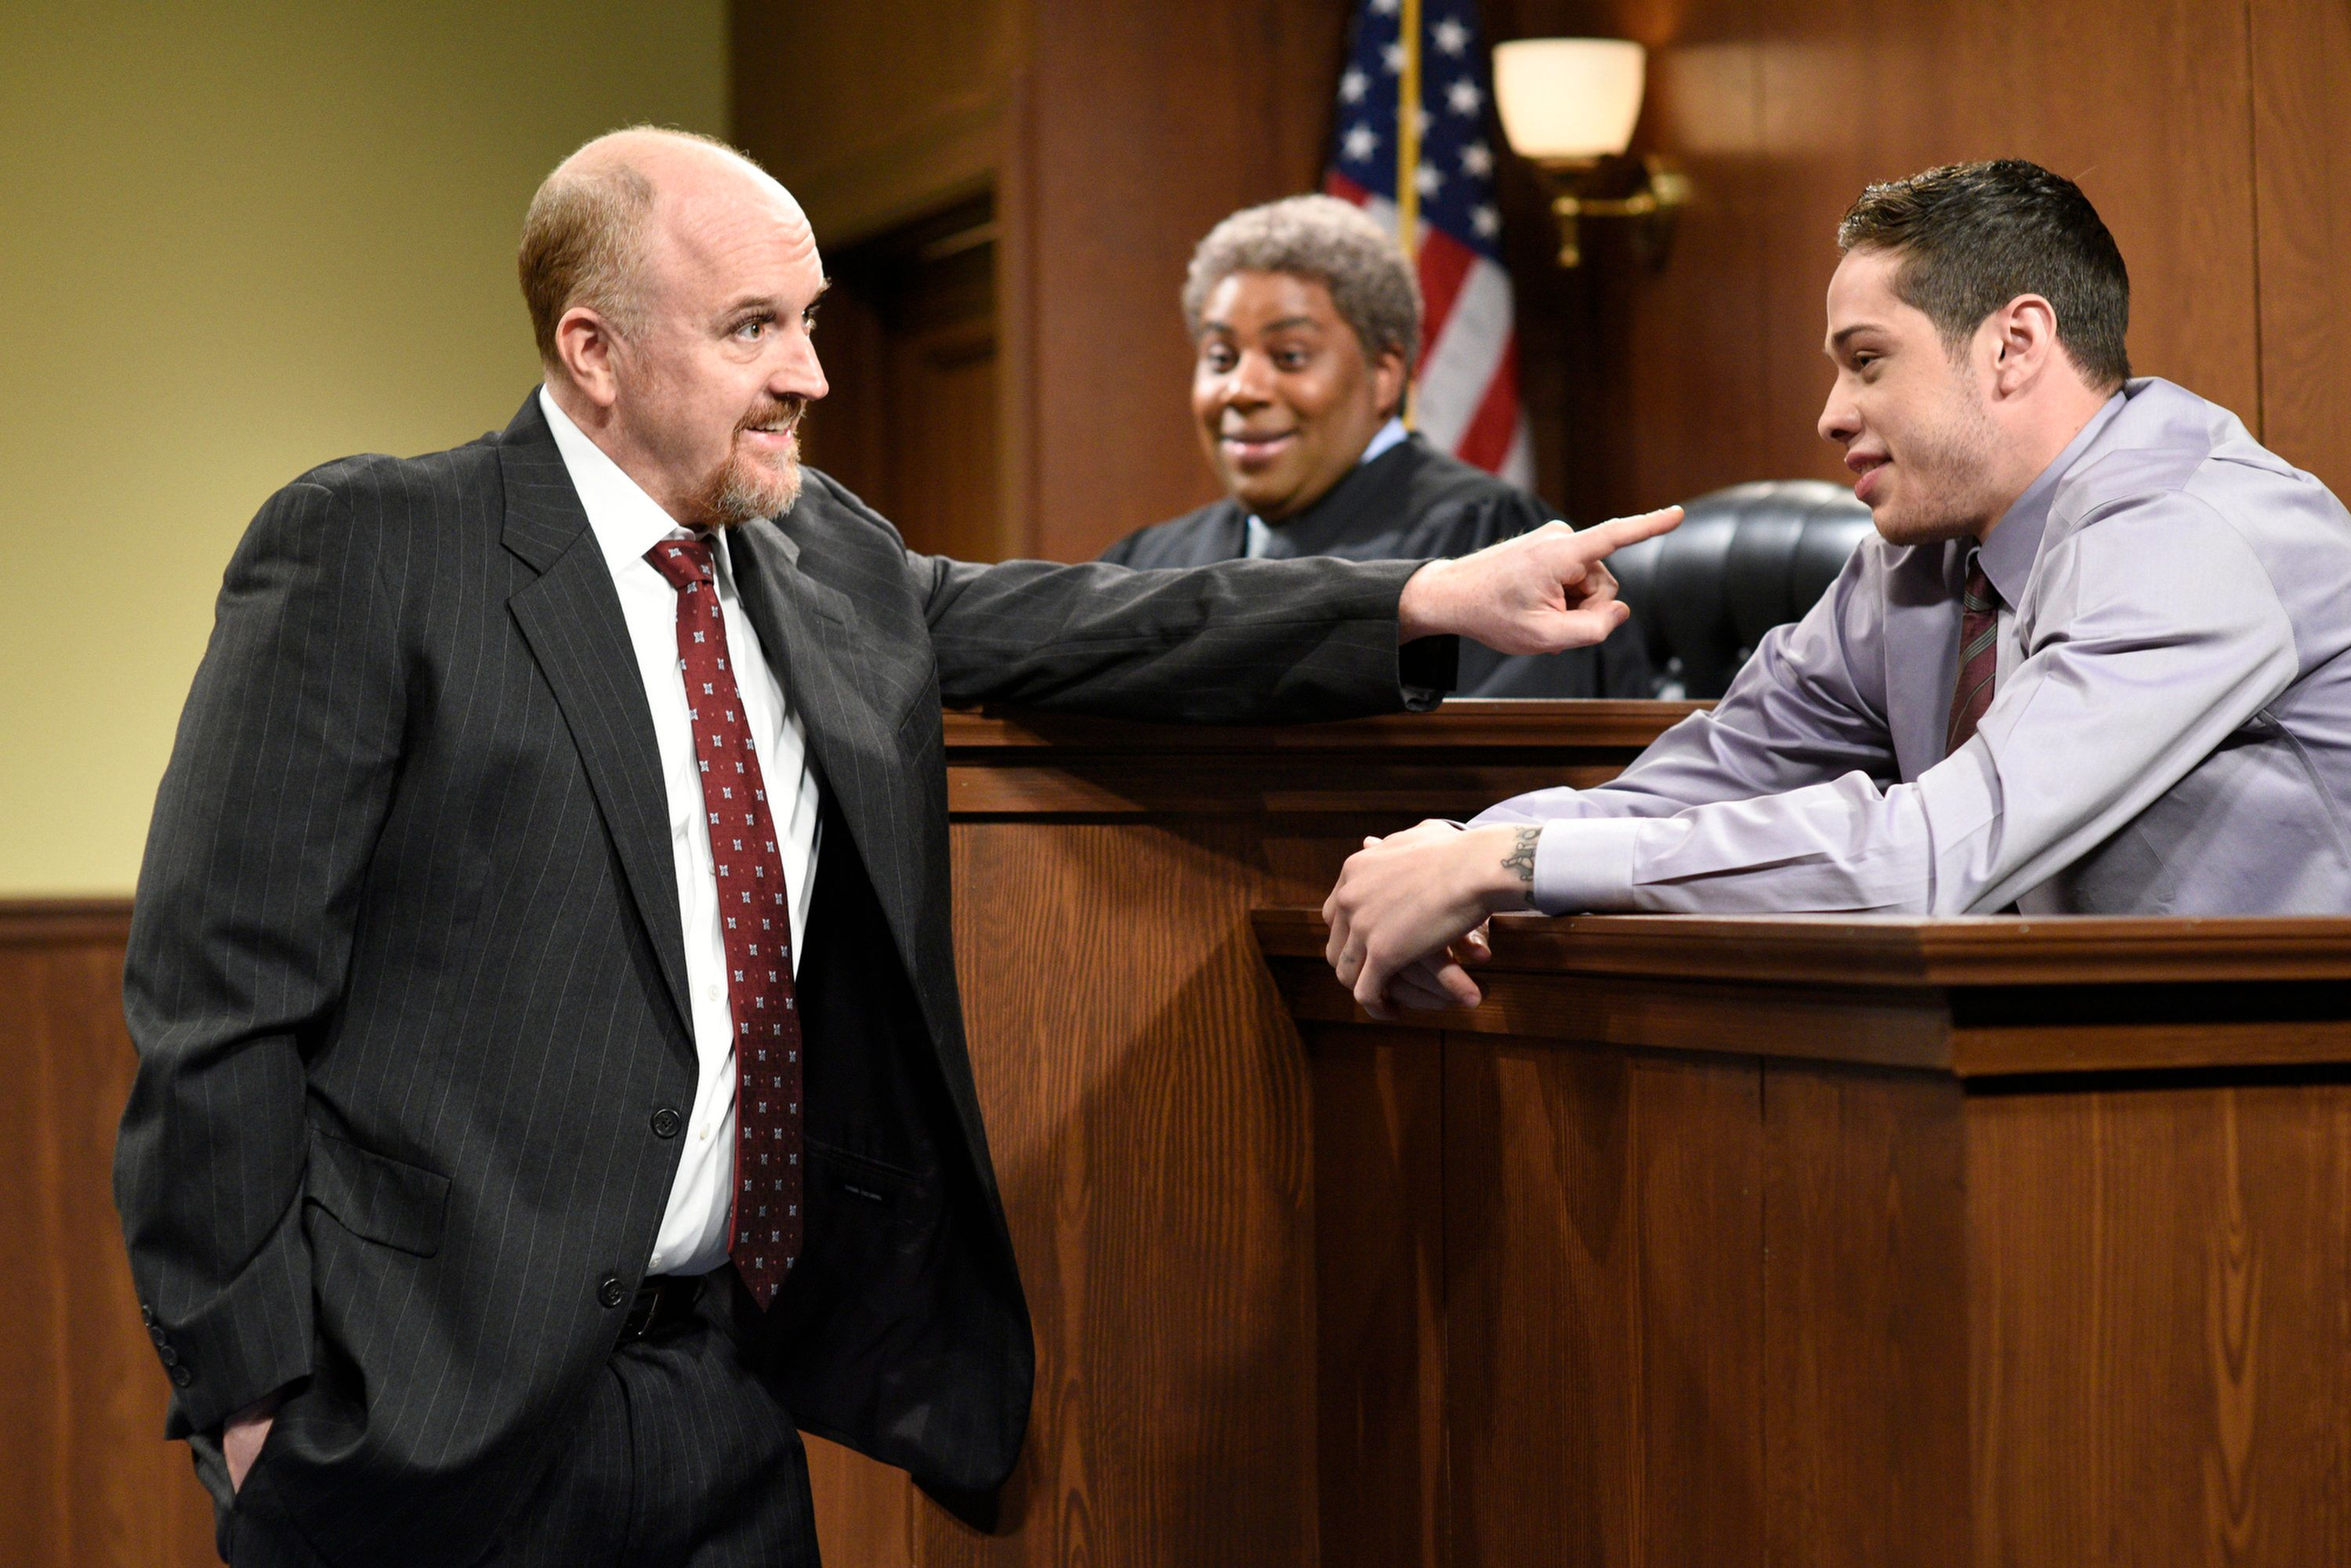 SATURDAY NIGHT LIVE -- 'Louis C.K.' Episode 1721 -- Pictured: (l-r) Host Louis C.K. as the Lawyer, Kenan Thompson as a judge, and Pete Davidson as a witness during 'The Lawyer' sketch on April 8, 2017 -- (Photo by: Will Heath/NBC/NBCU Photo Bank via Getty Images)